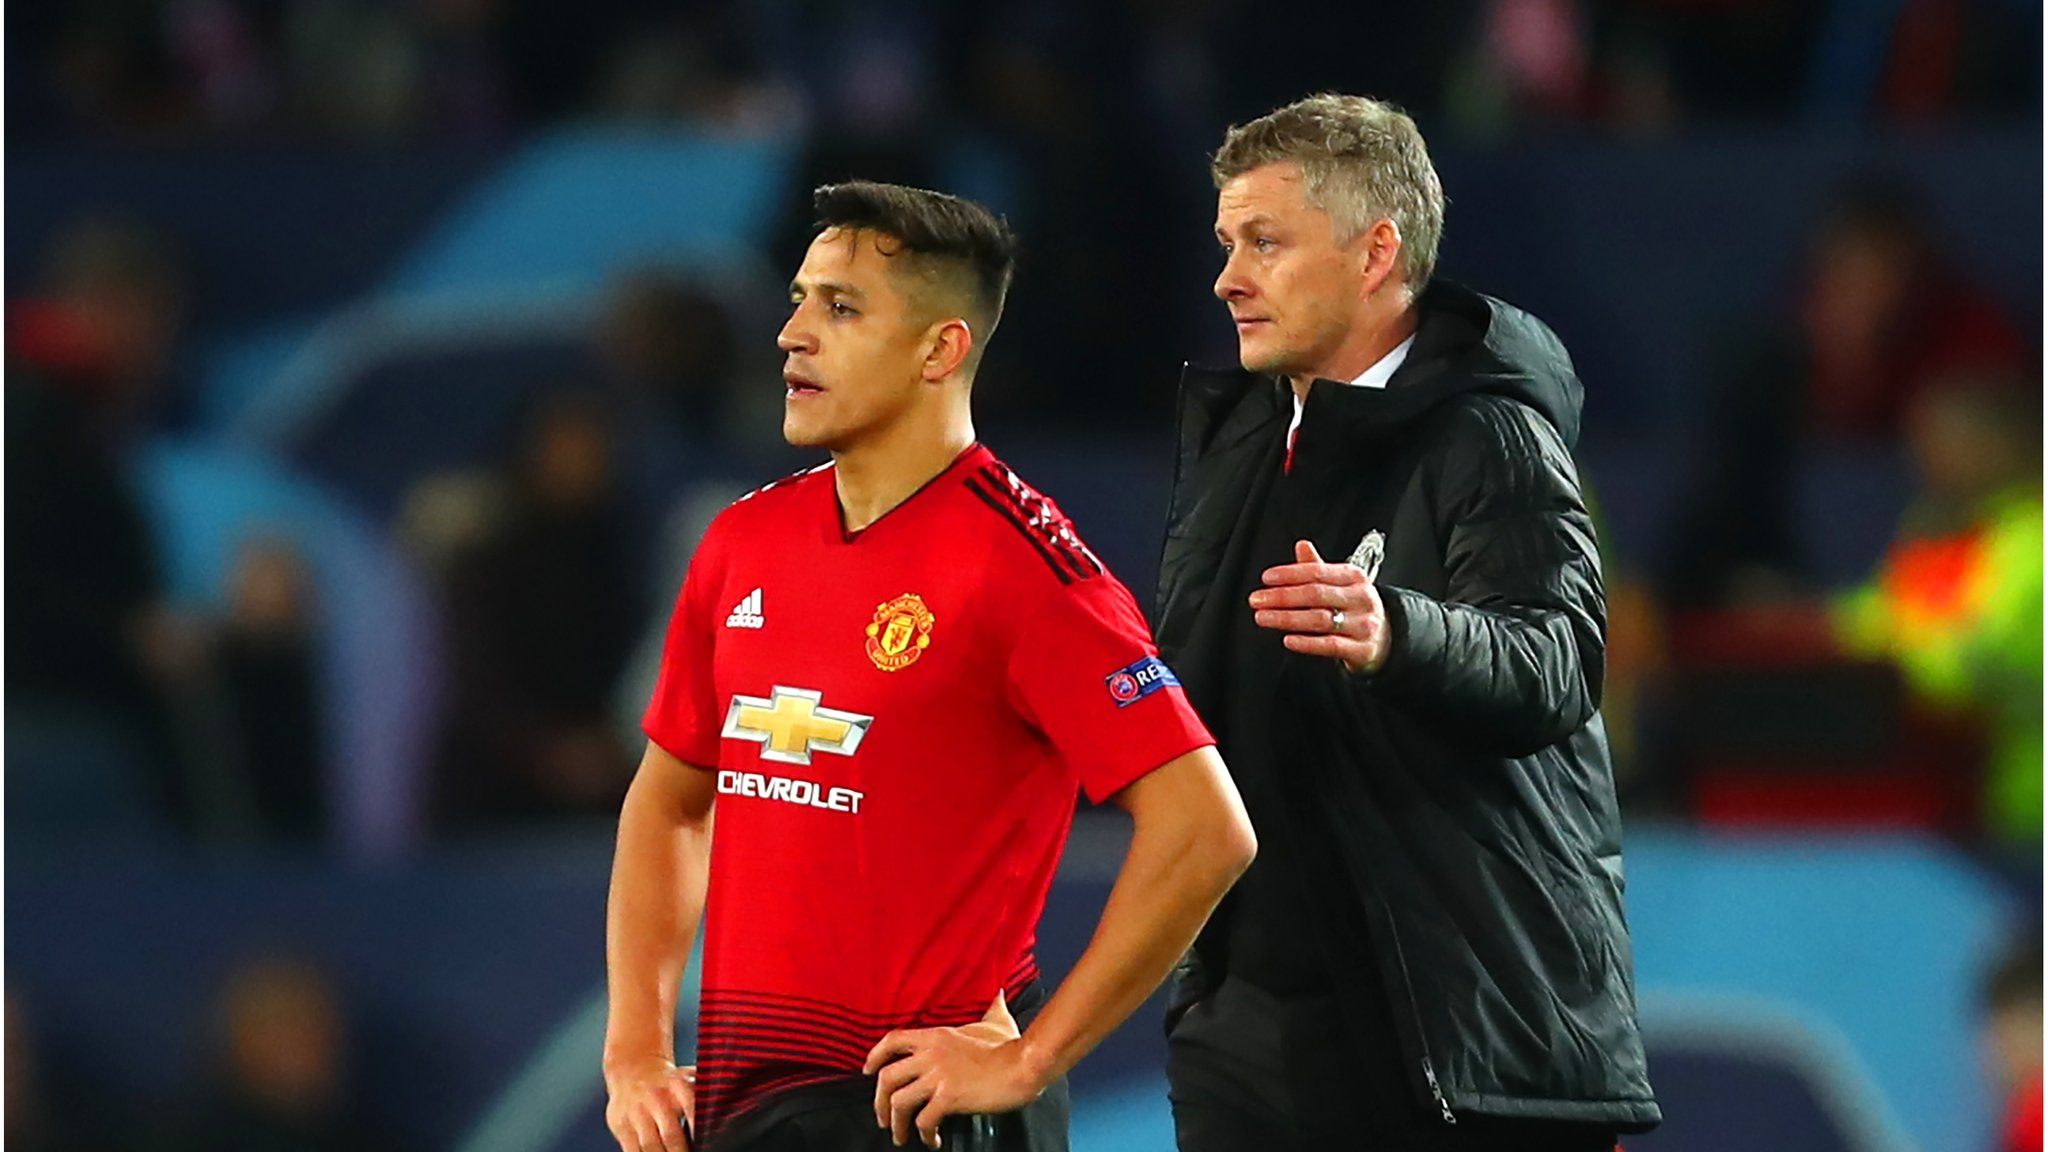 Manchester United: Ole Gunnar Solskjaer 'sure' Alexis Sanchez form will improve